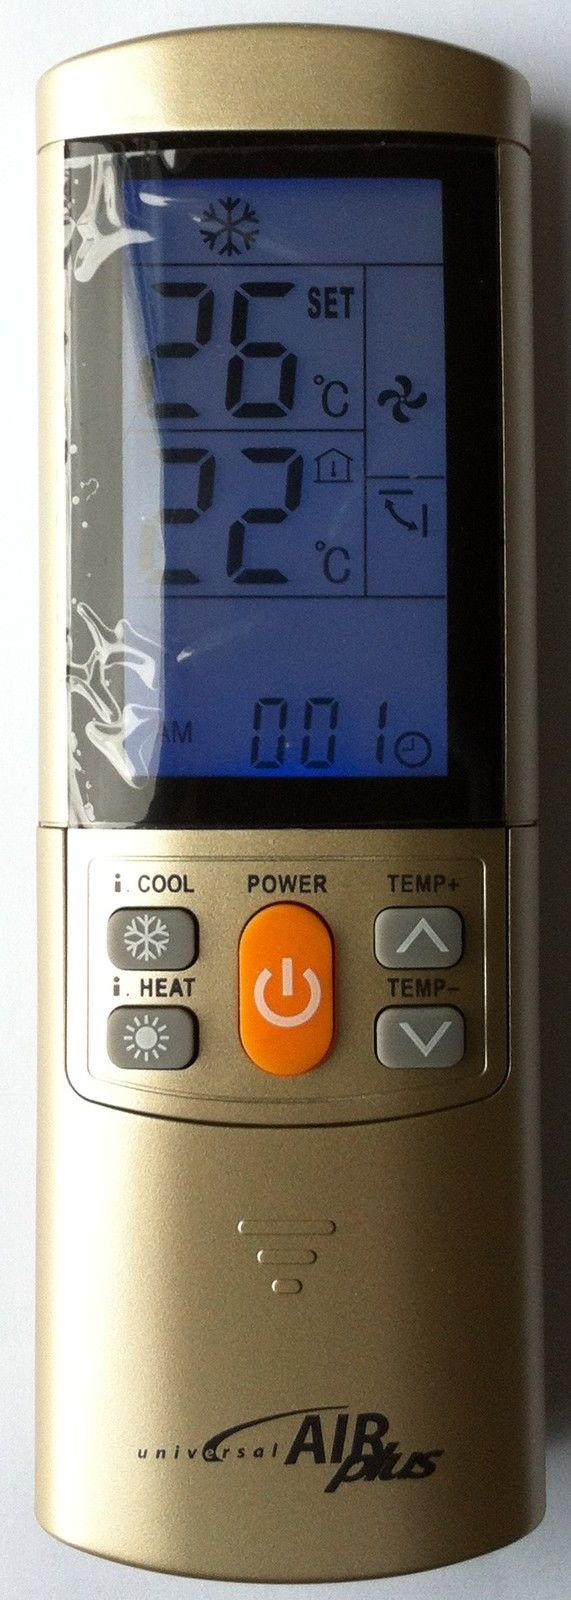 UNIVERSAL AIR CONDITIONER REMOTE CONTROL - CELESTIAL AIR CON FULL FUNCTION - Remote Control Warehouse